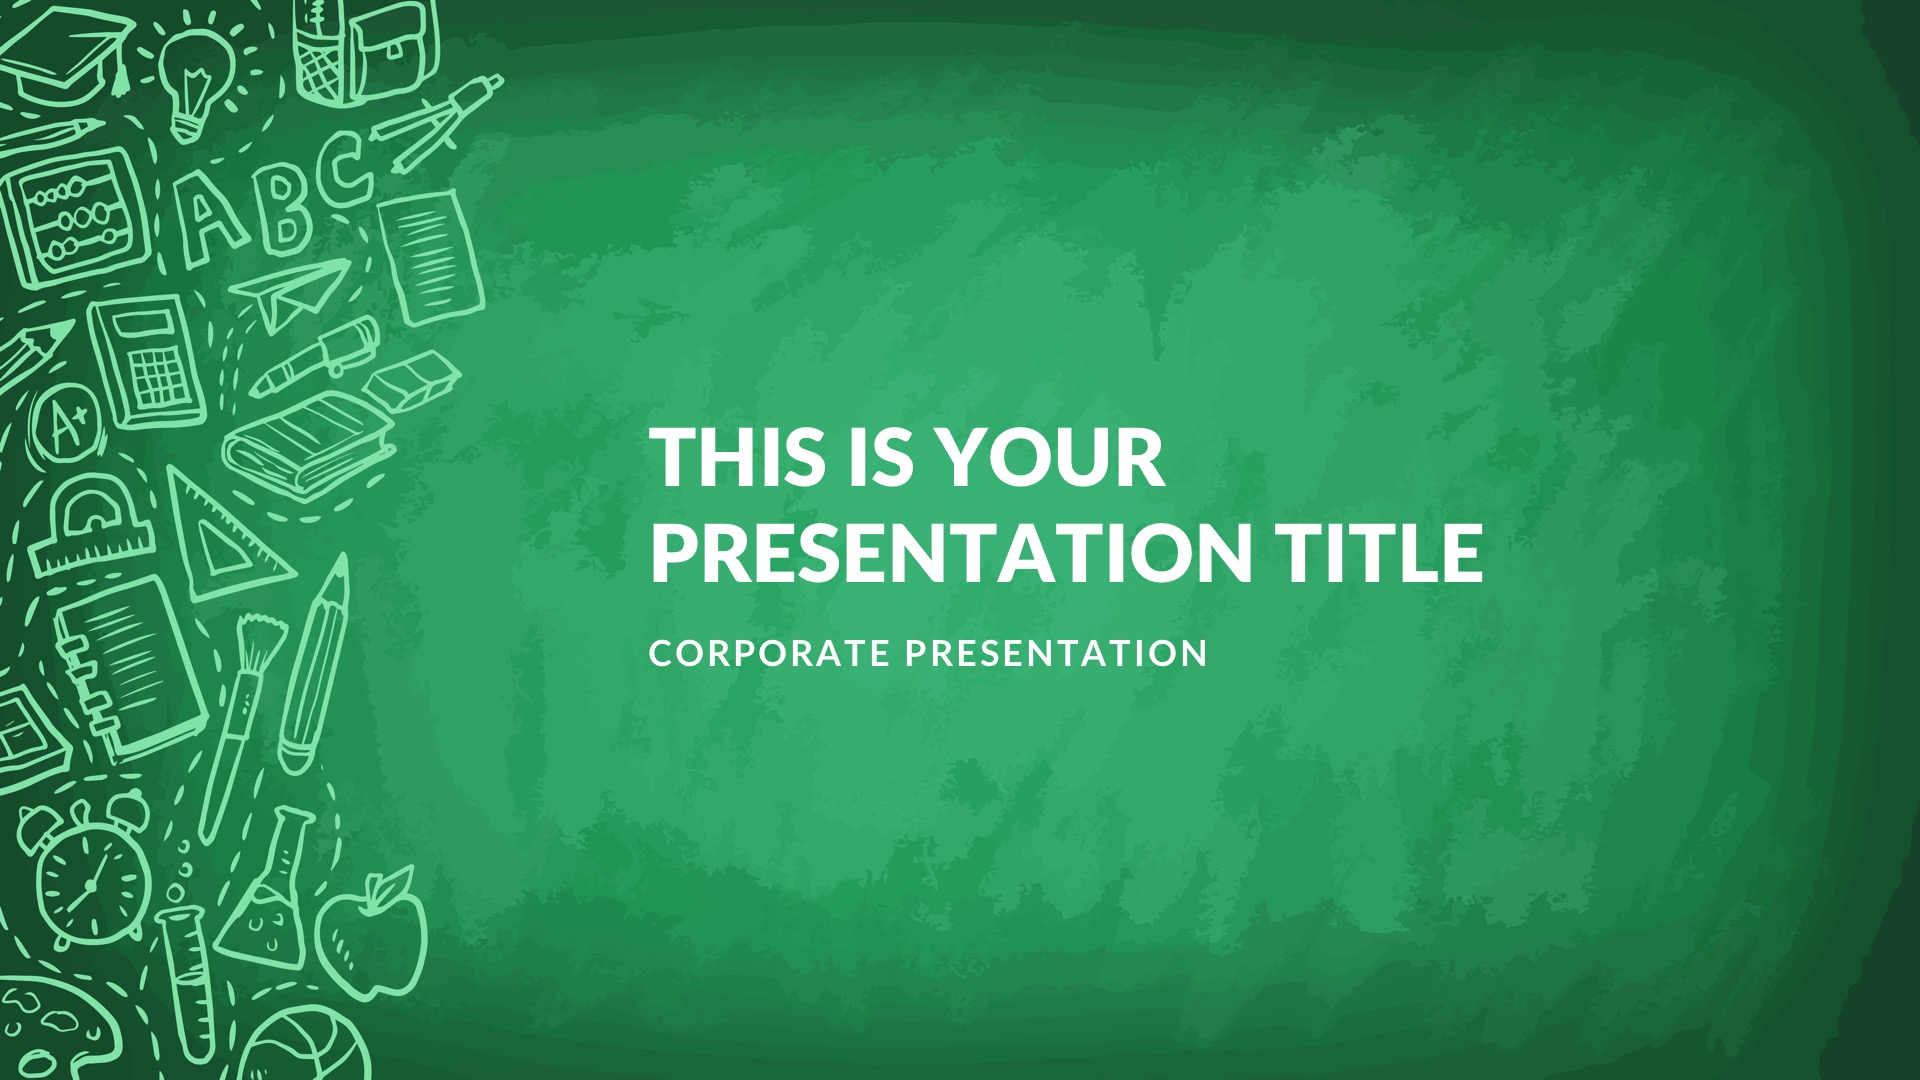 Greenboard Free PowerPoint Template, Google Slides, Keynote